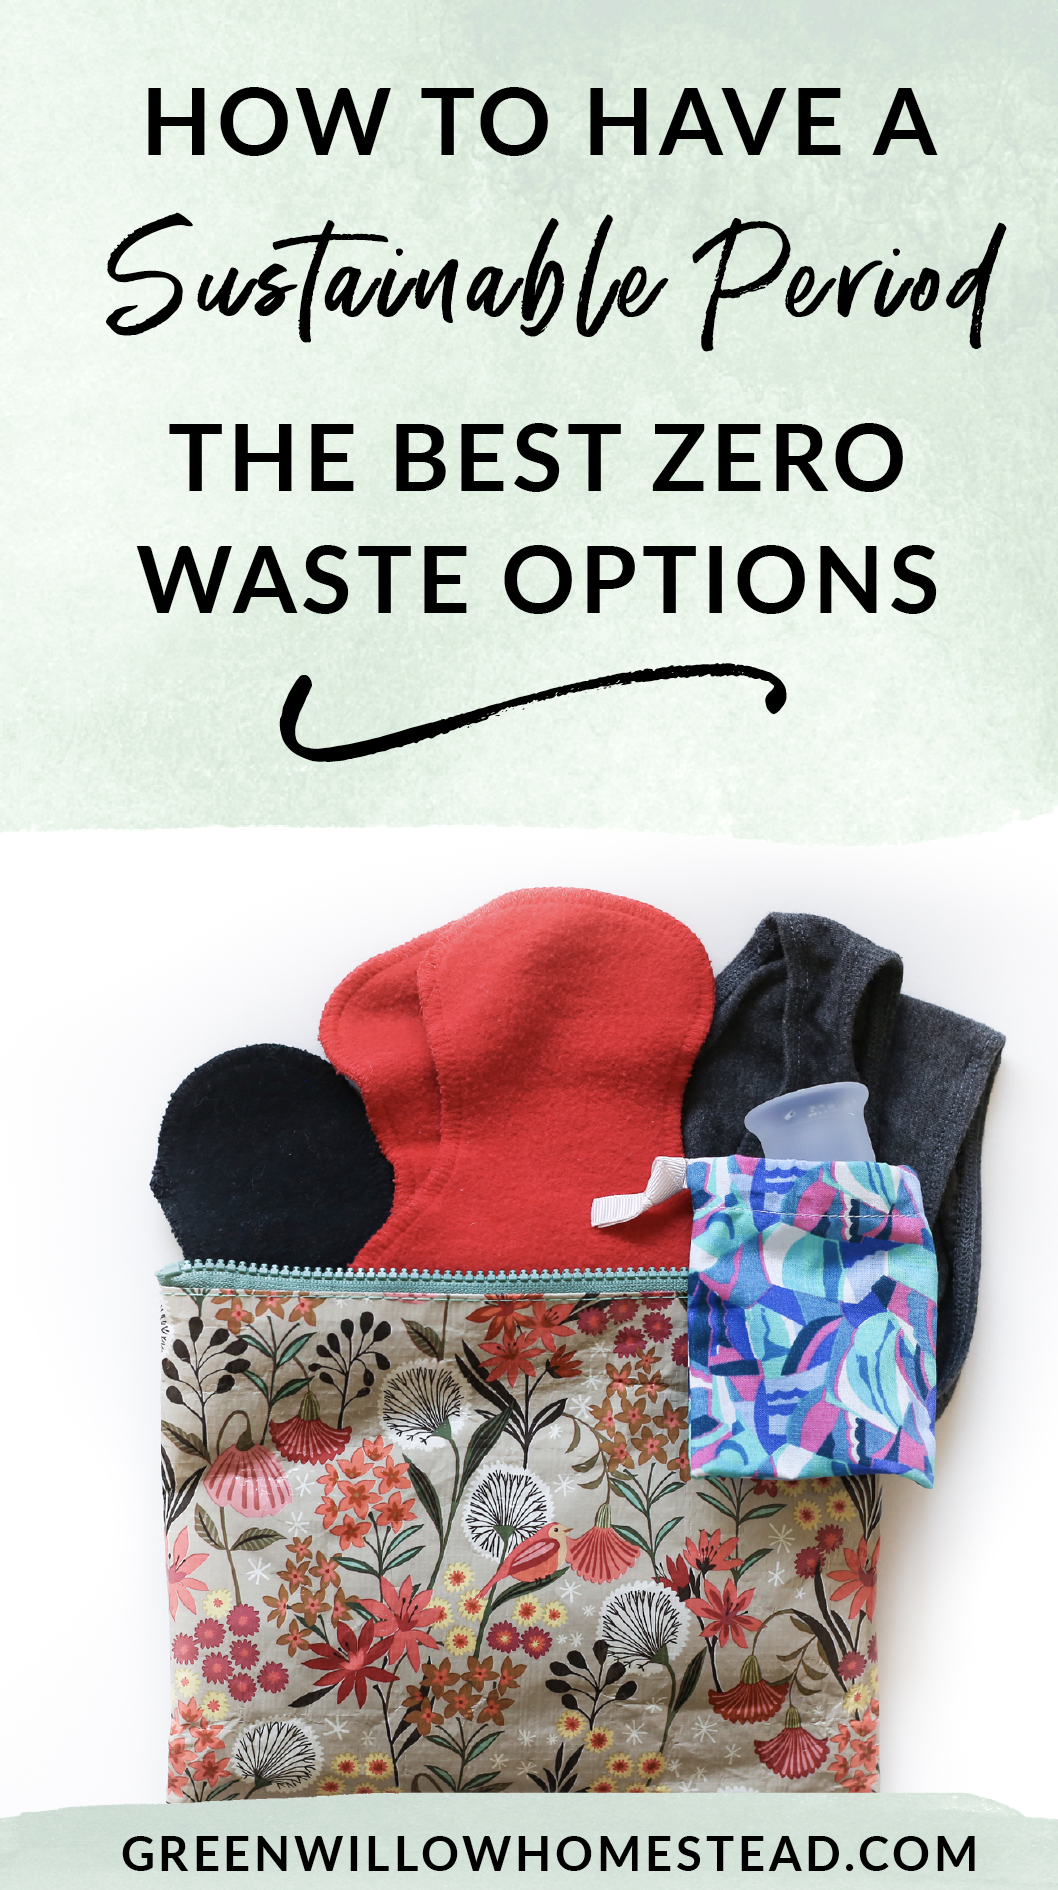 The best zero waste non toxic options for a sustainable menstruation cycle